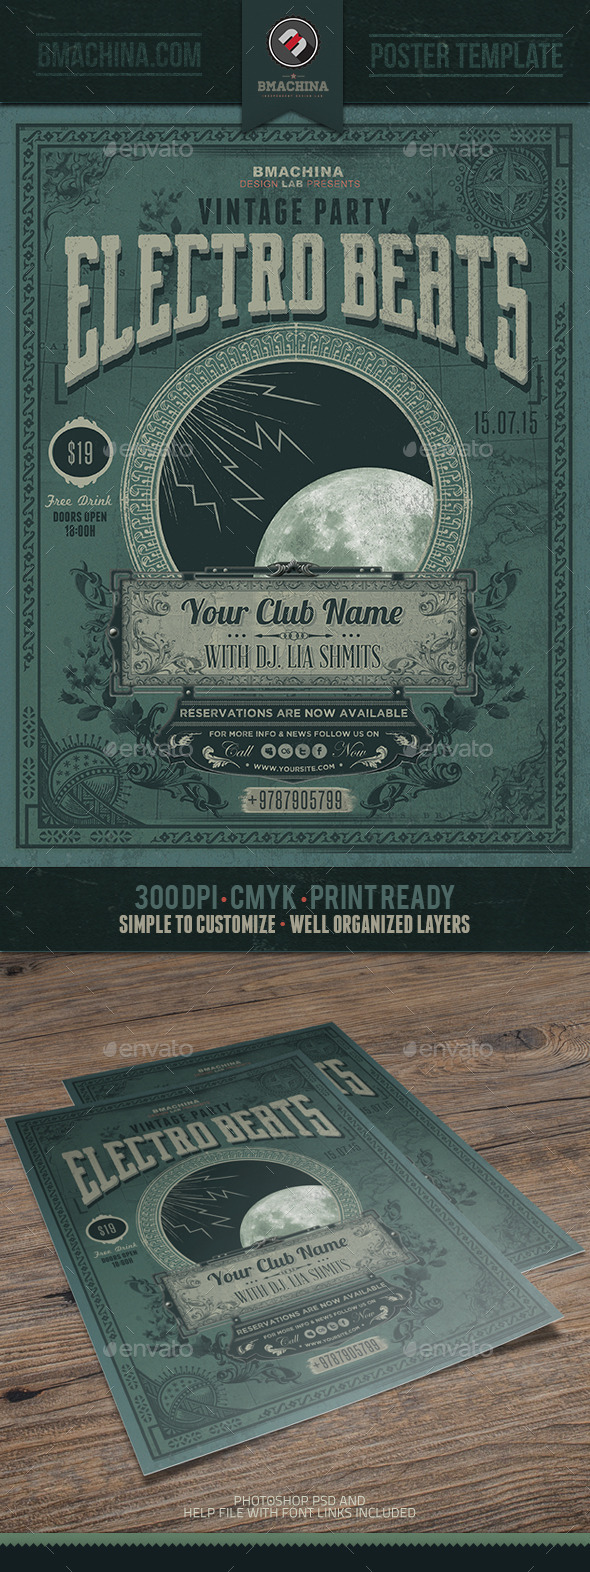 Electro Vintage Beats - Poster Template - Events Flyers